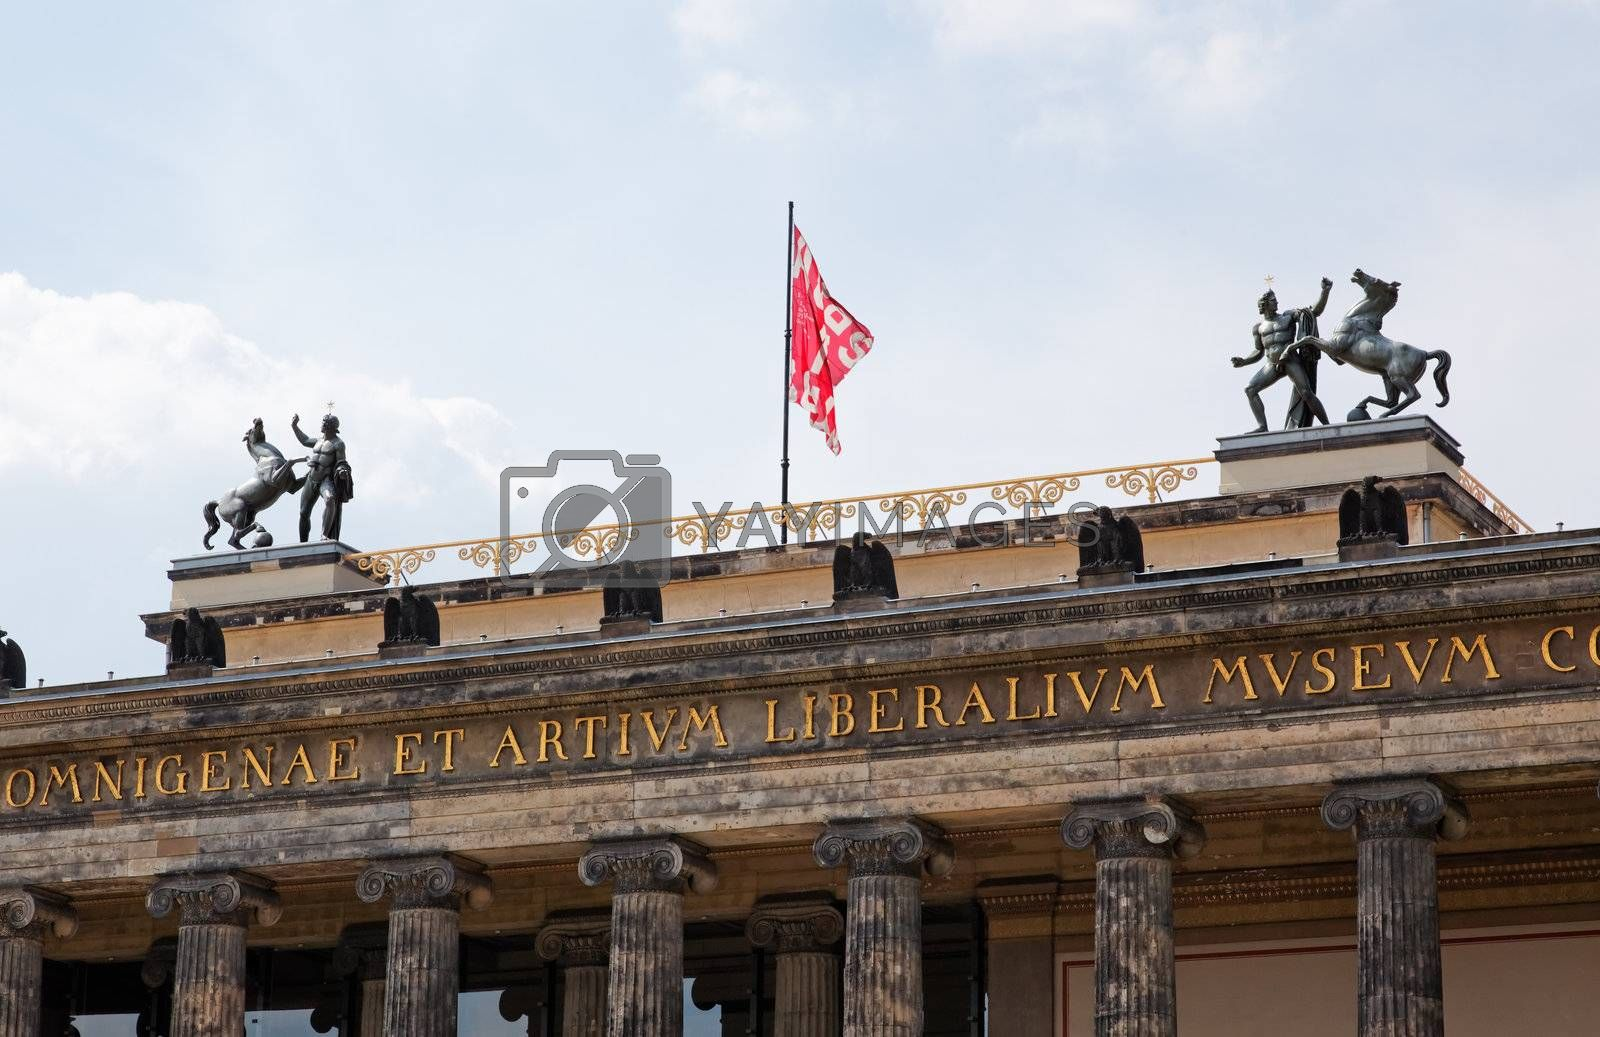 the Old Museum (Altes Museum) in Berlin, Germany